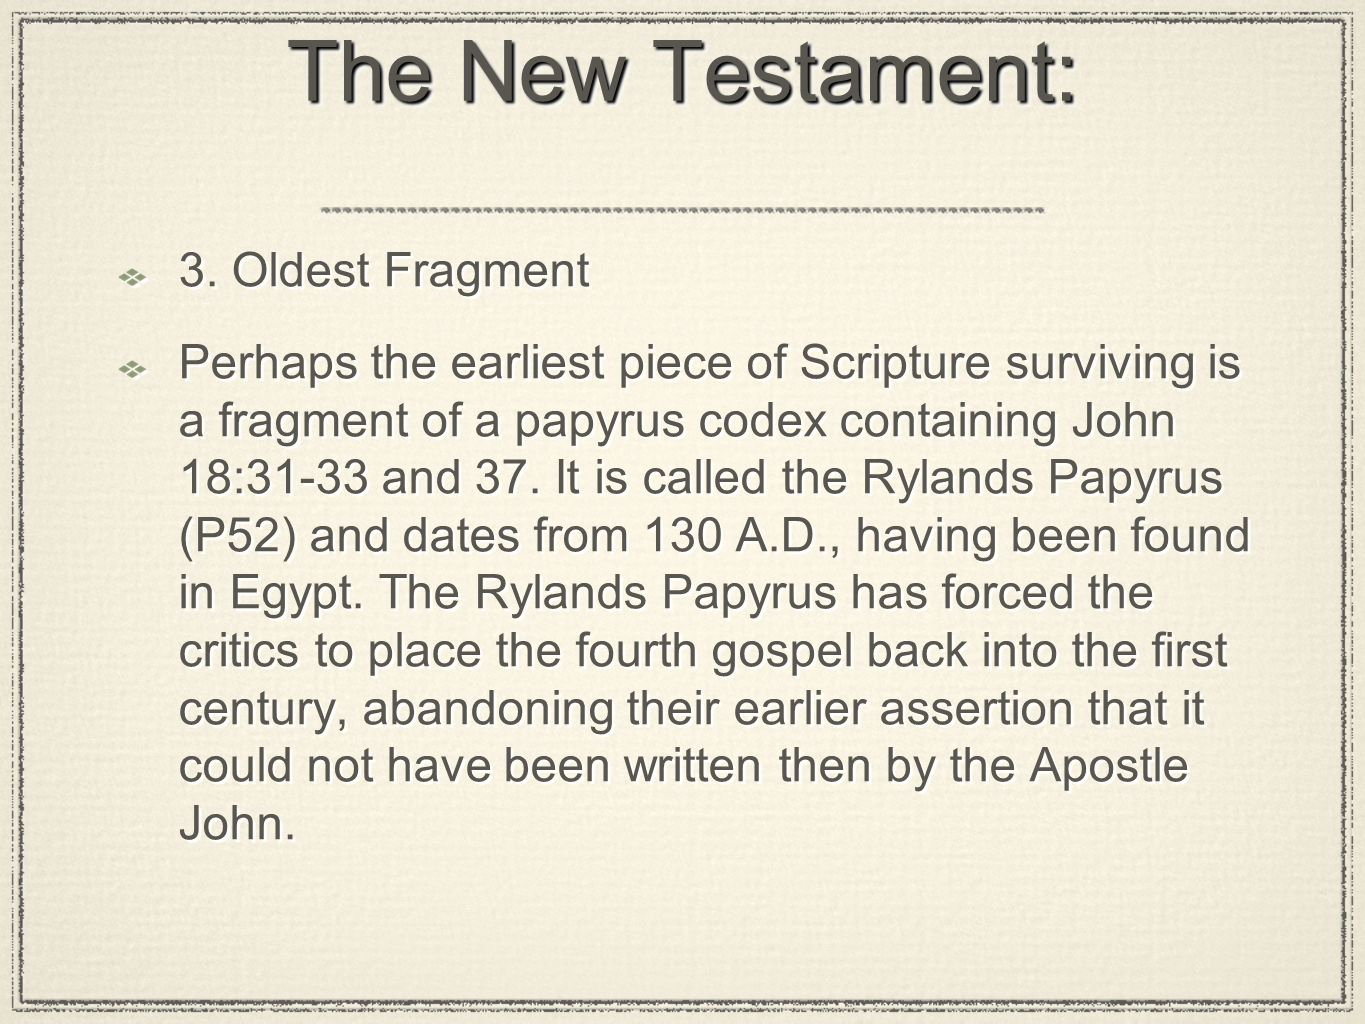 The New Testament: 3. Oldest Fragment